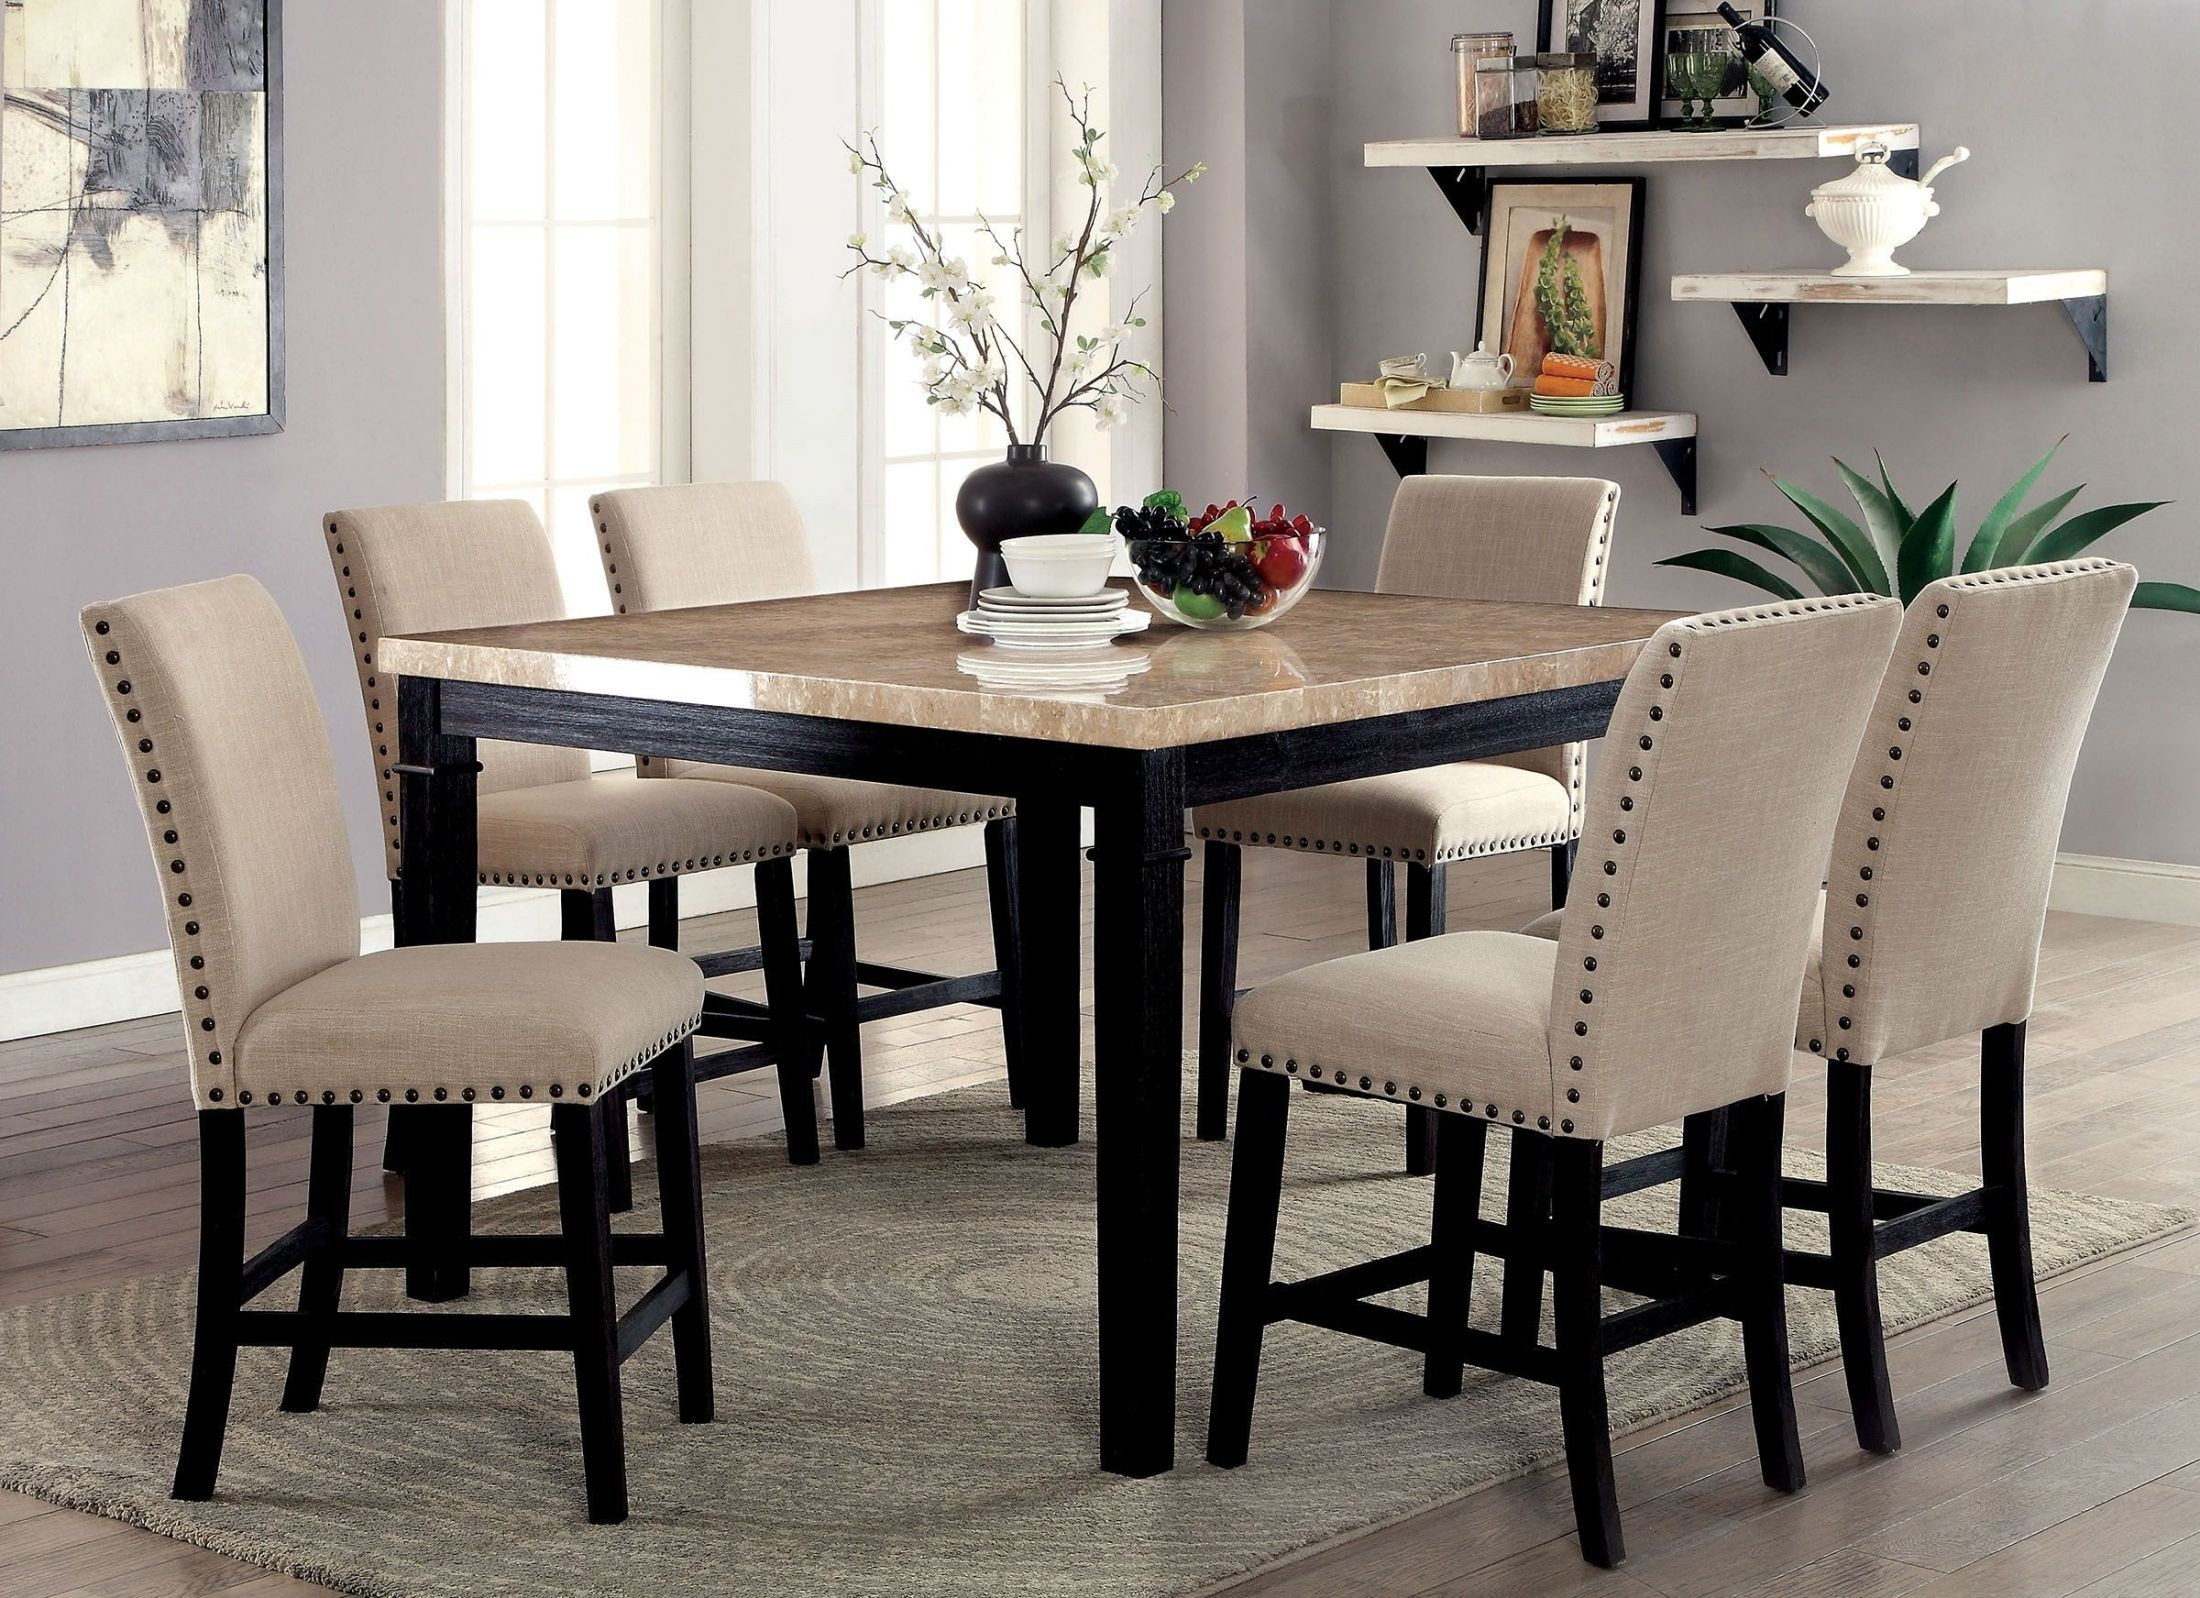 Dodson II Black Counter Height Dining Room Set CM3466PT Furniture Of America